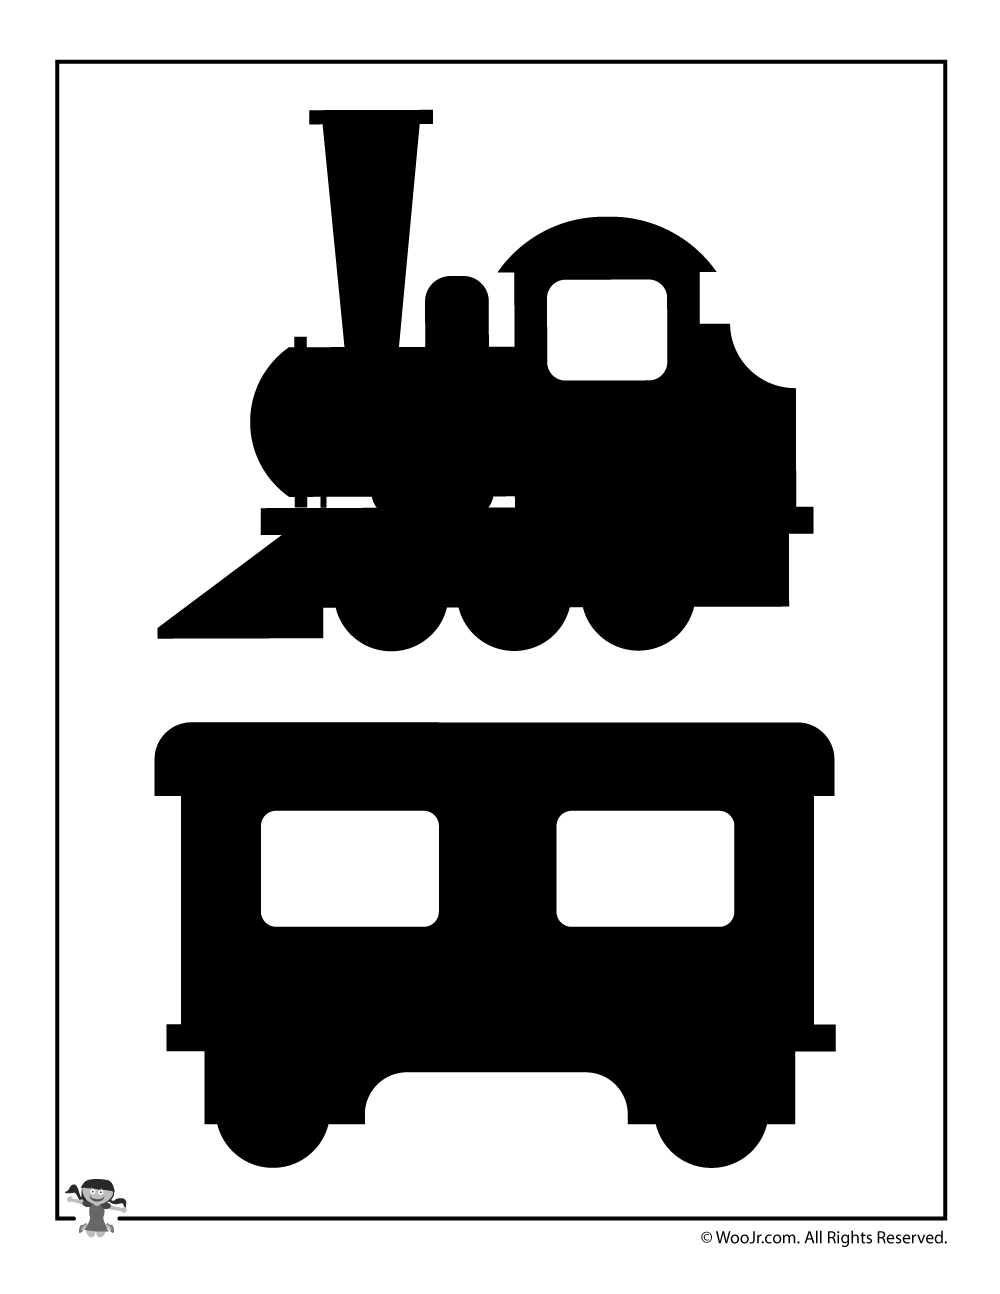 image relating to Train Printable named Printable Hogwarts Categorical Prepare Shadow Puppet Woo! Jr